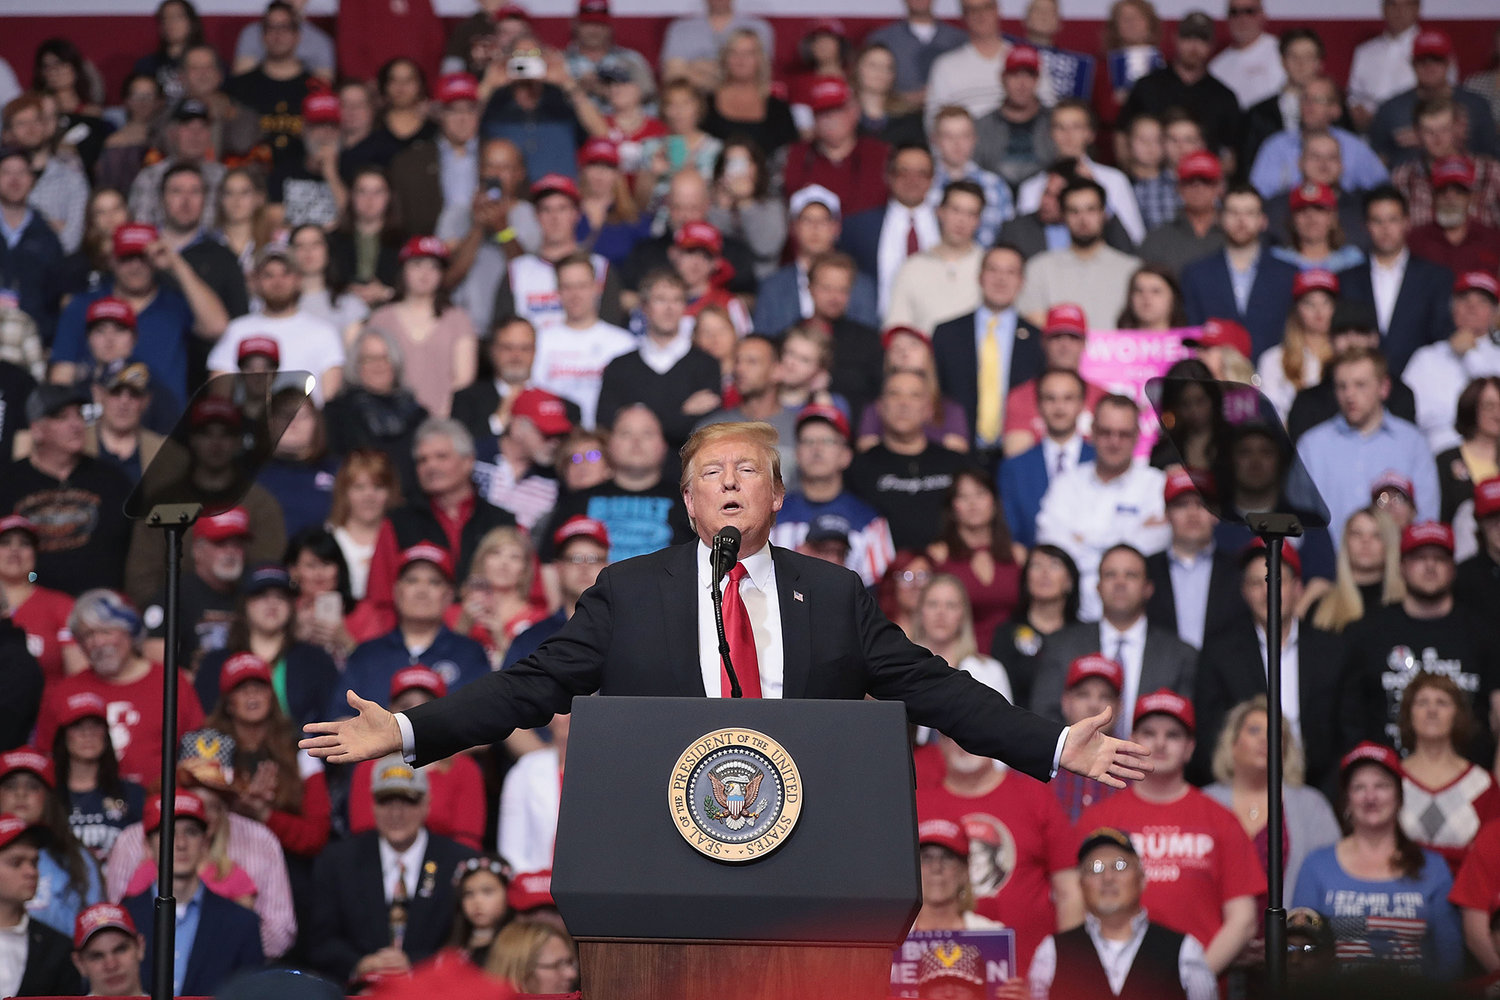 President Donald Trump speaks to supporters during a rally at the Van Andel Arena in Grand Rapids, Mich., on March 28, 2019.